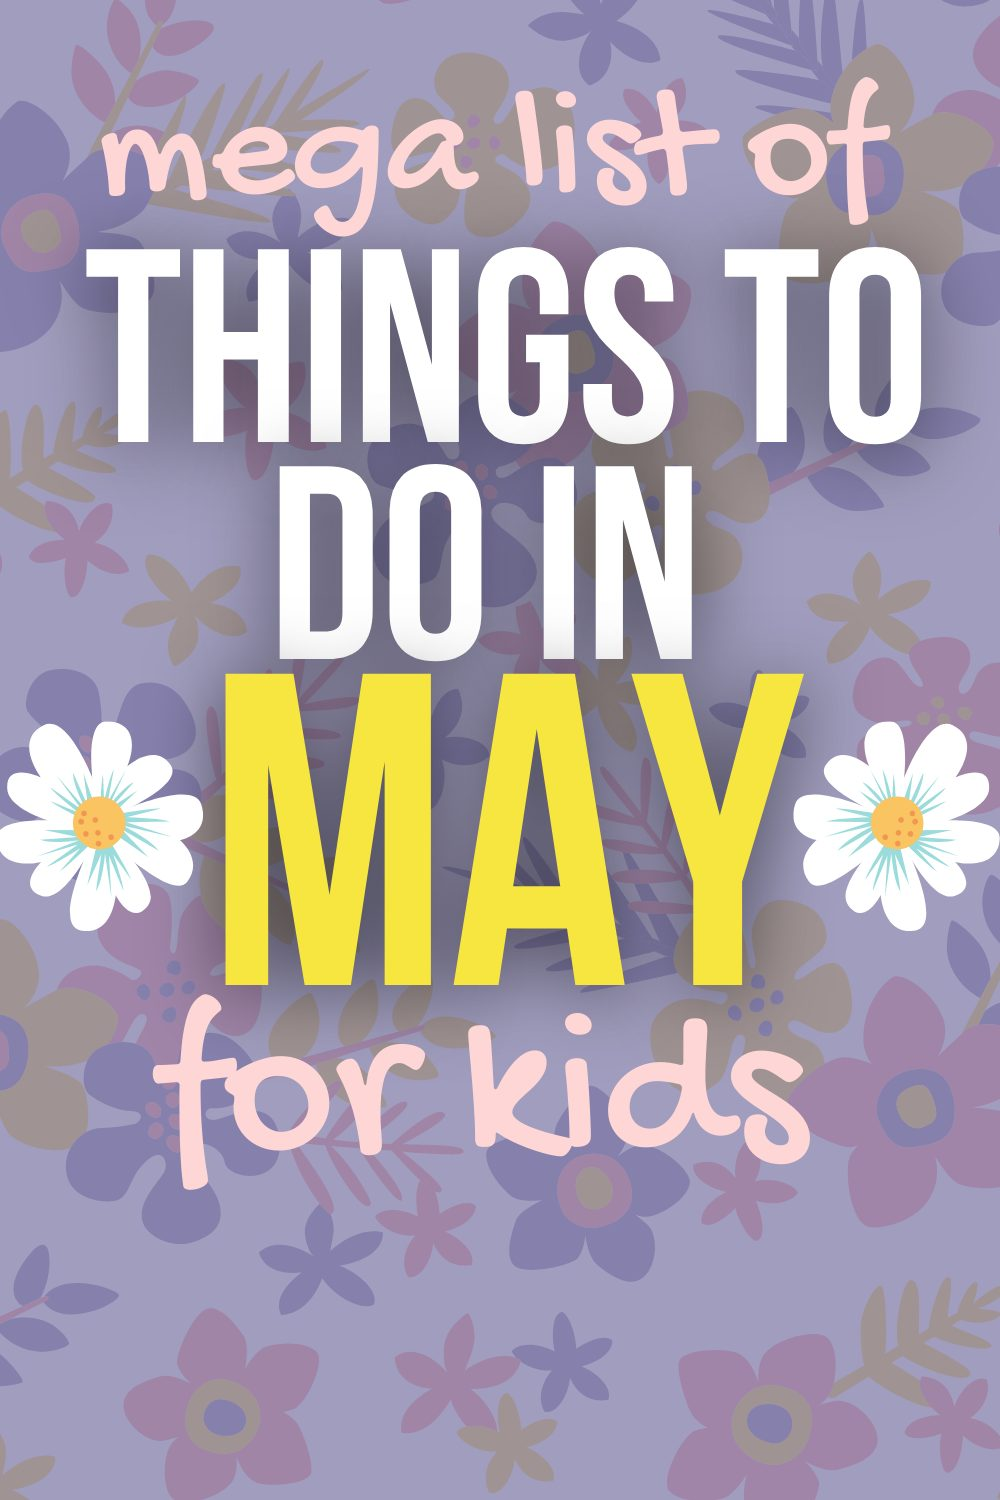 MAY ACTIVITIES FOR KIDS on a cartoon flower background